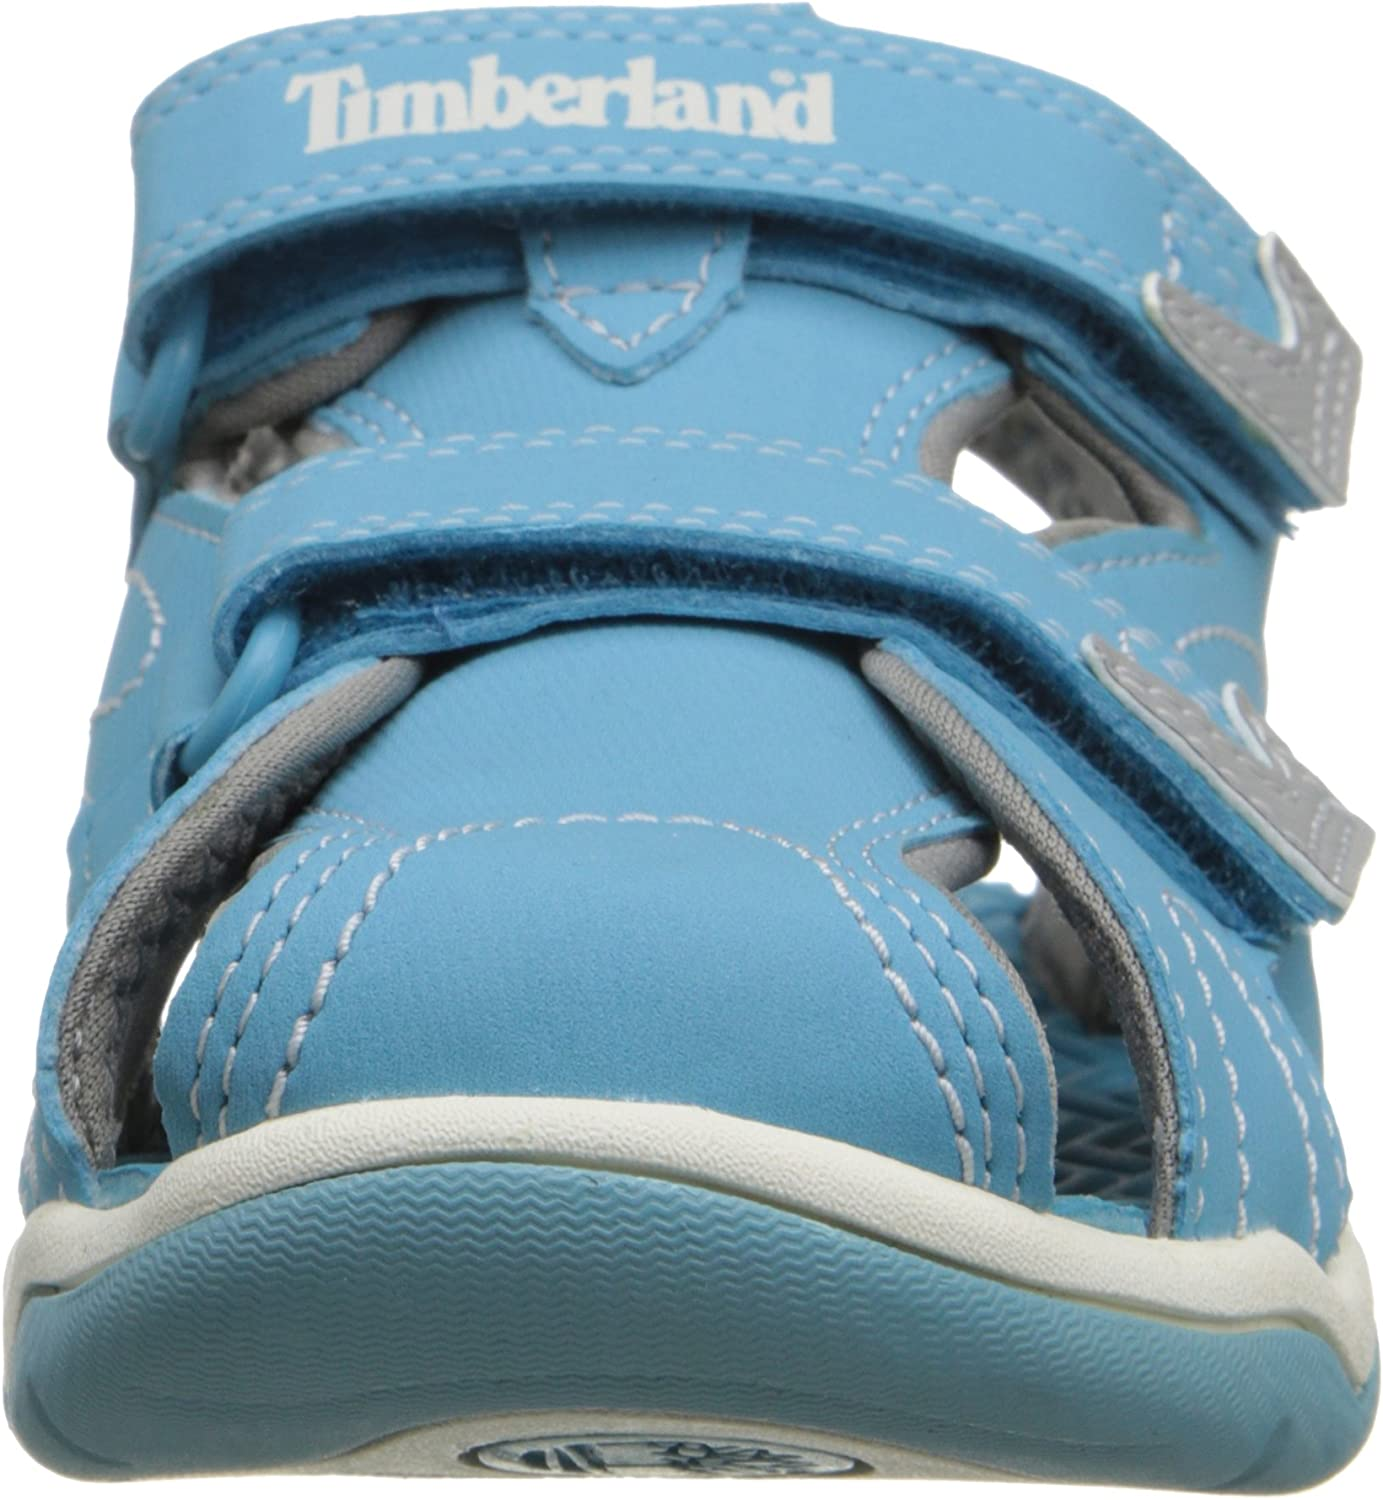 Timberland Adventure Seeker Closed-Toe Sandal Toddler//Little Kid